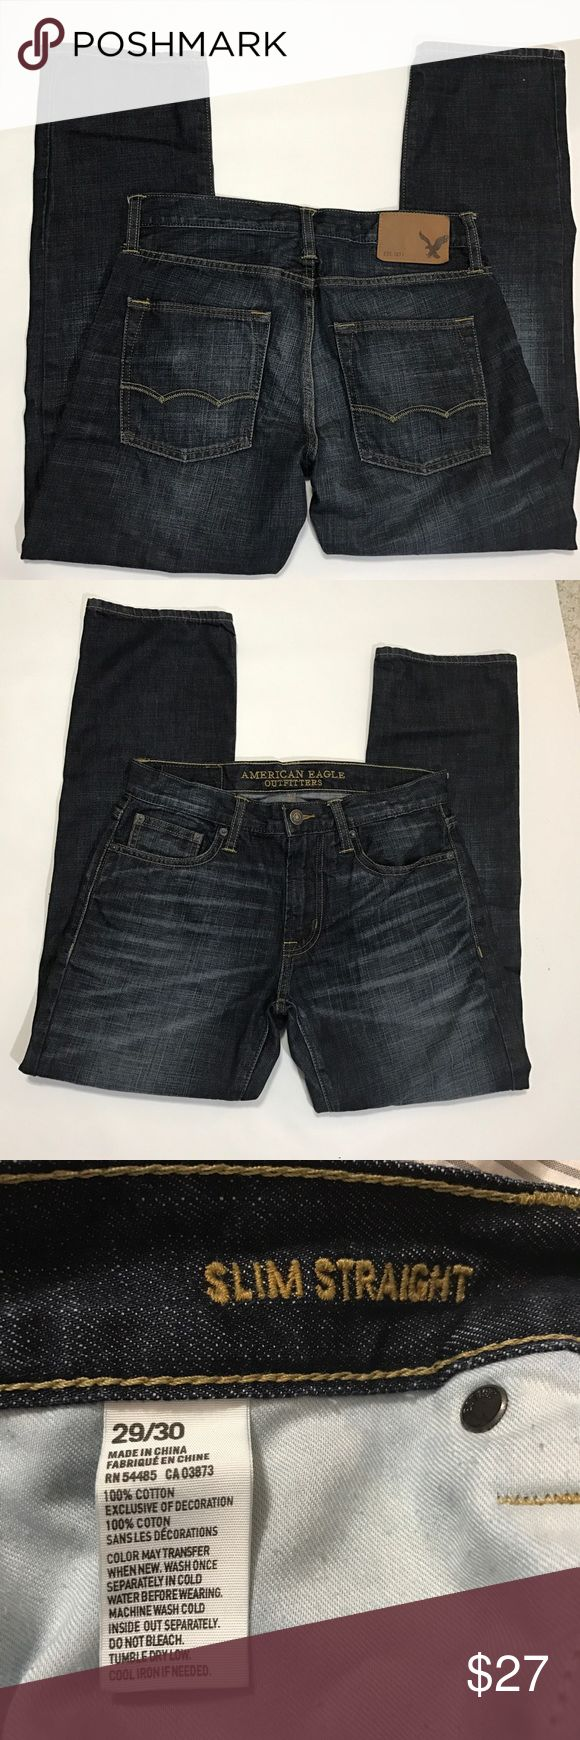 """American Eagle ?? men's slim straight jeans American Eagle Outfitters Slim straight men's jeans. Tag size 29/30. Waist measures 15.5"""" laid flat, inseam measures 29.75"""". 100% Cotton. Faded look, dark blue jeans. American Eagle Outfitters Jeans Slim Straight"""